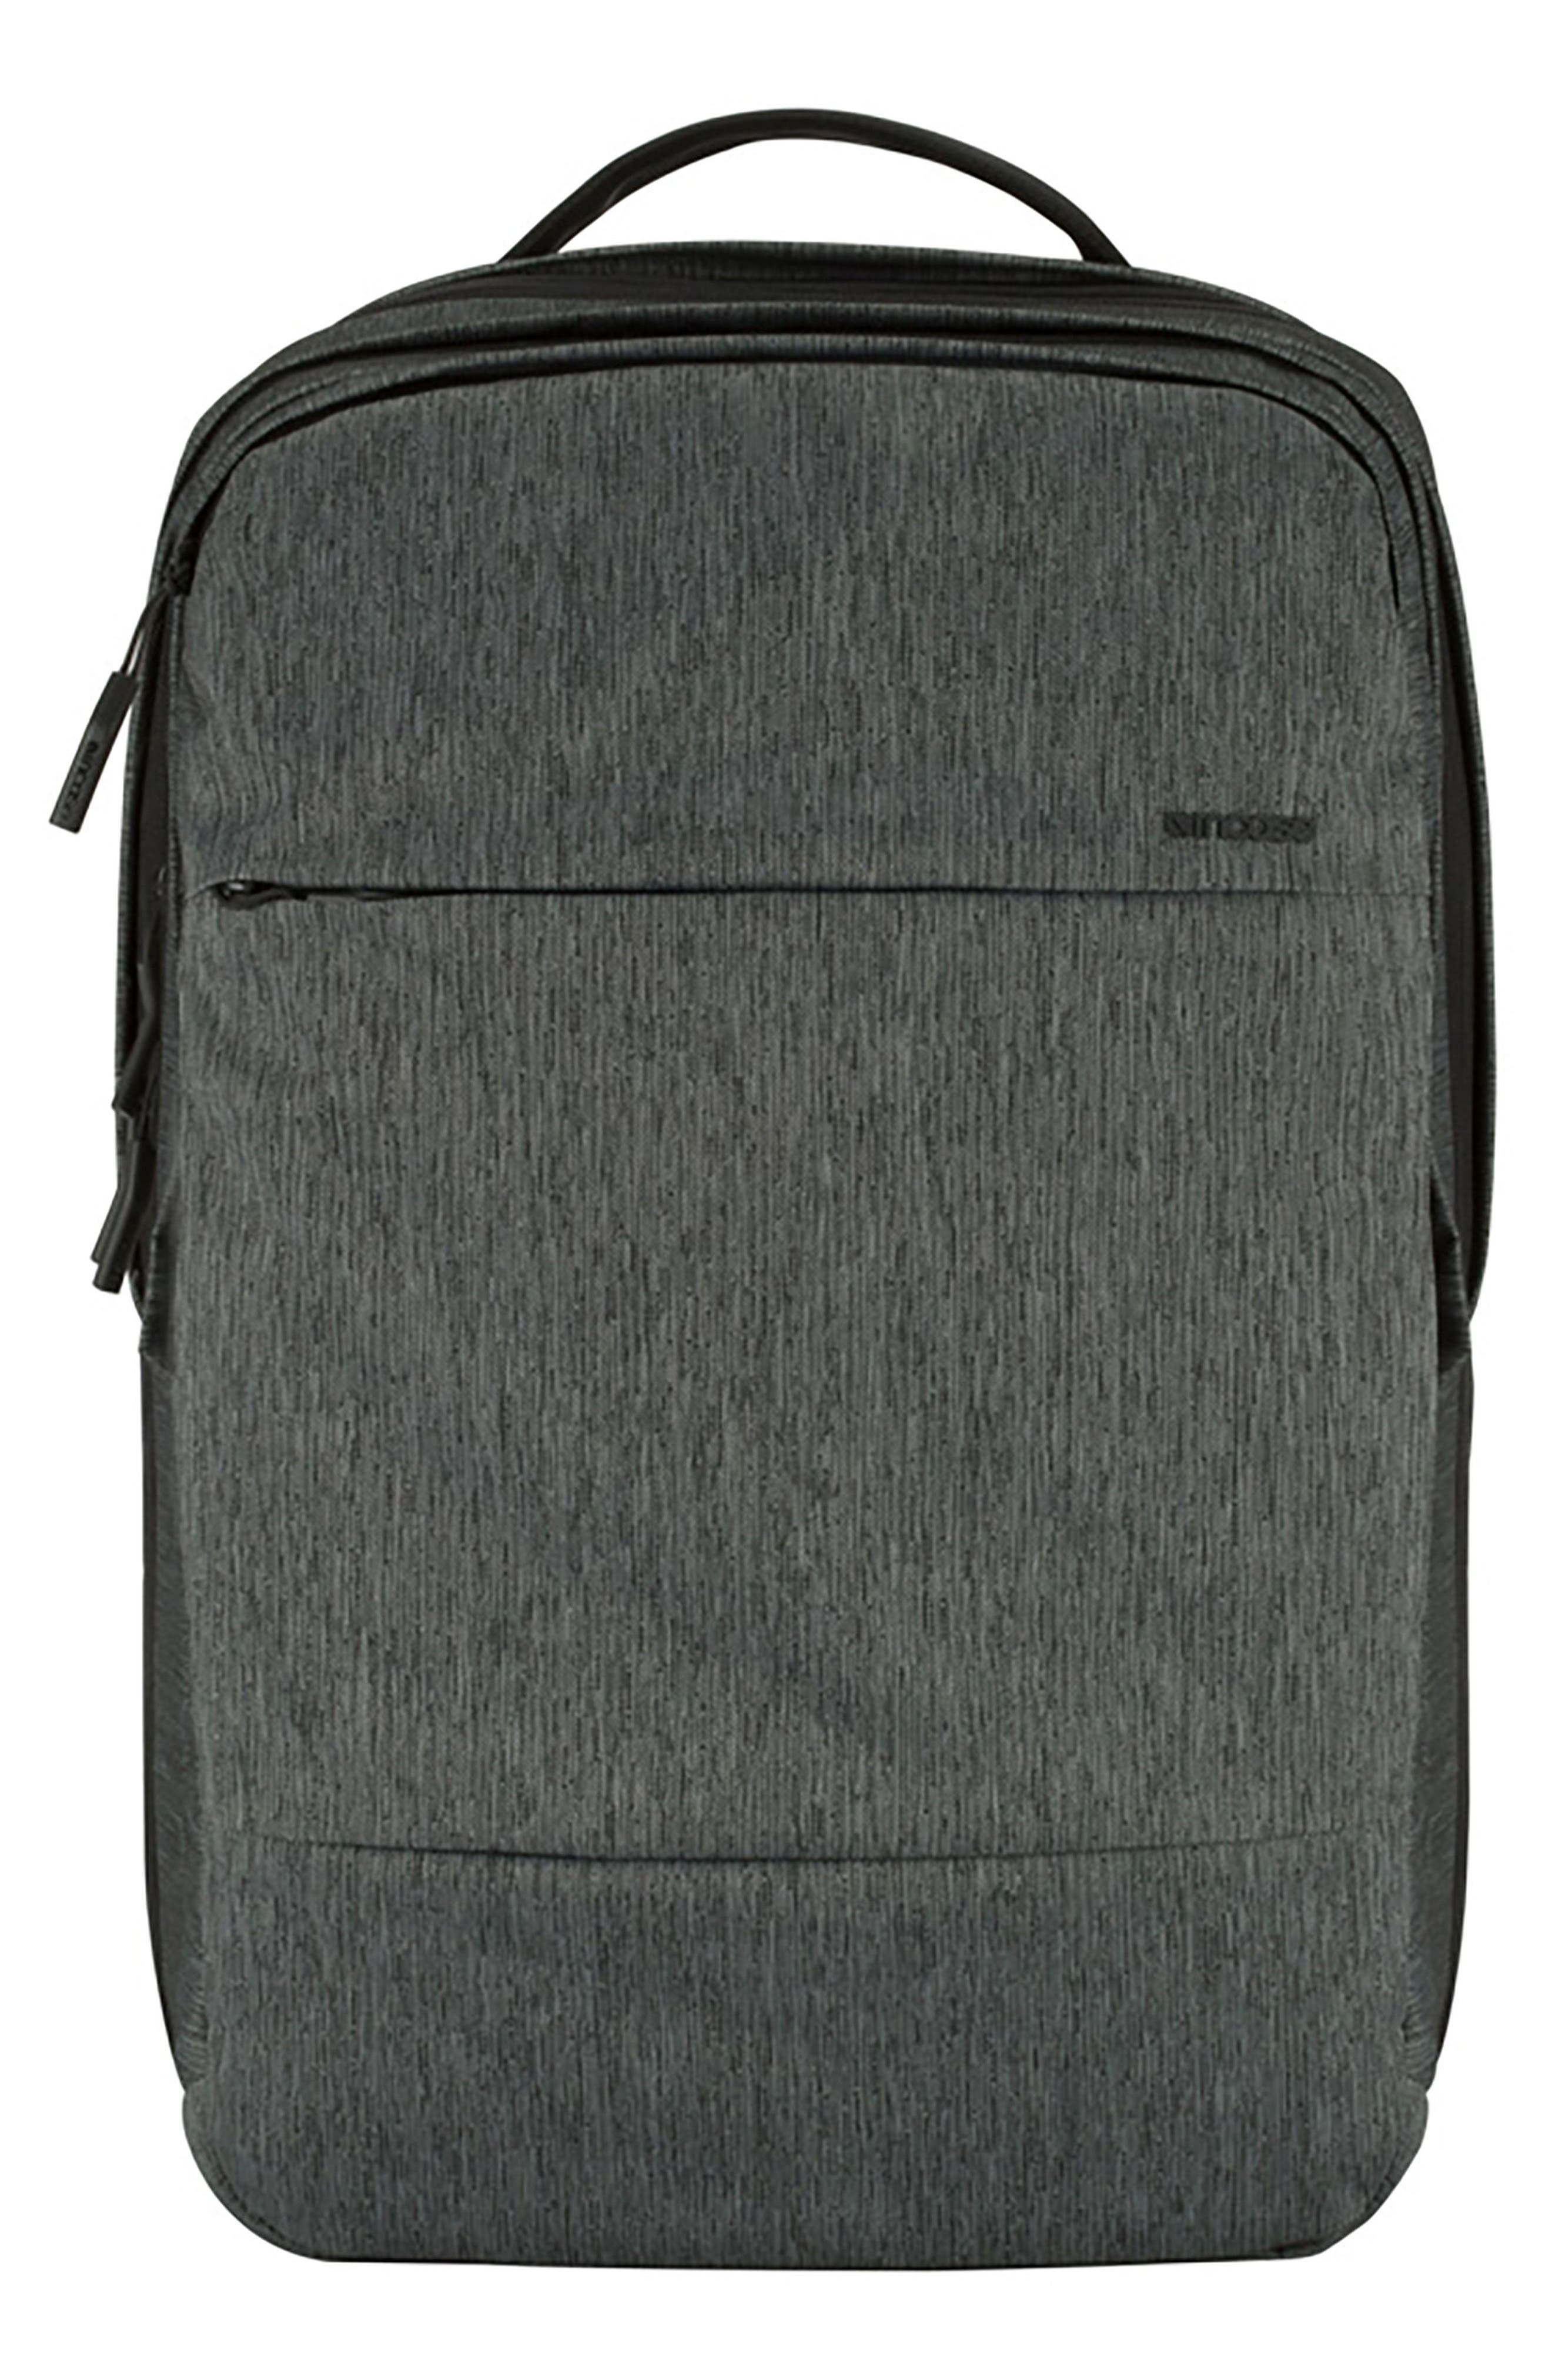 City Commuter Backpack,                             Main thumbnail 1, color,                             HEATHER BLACK